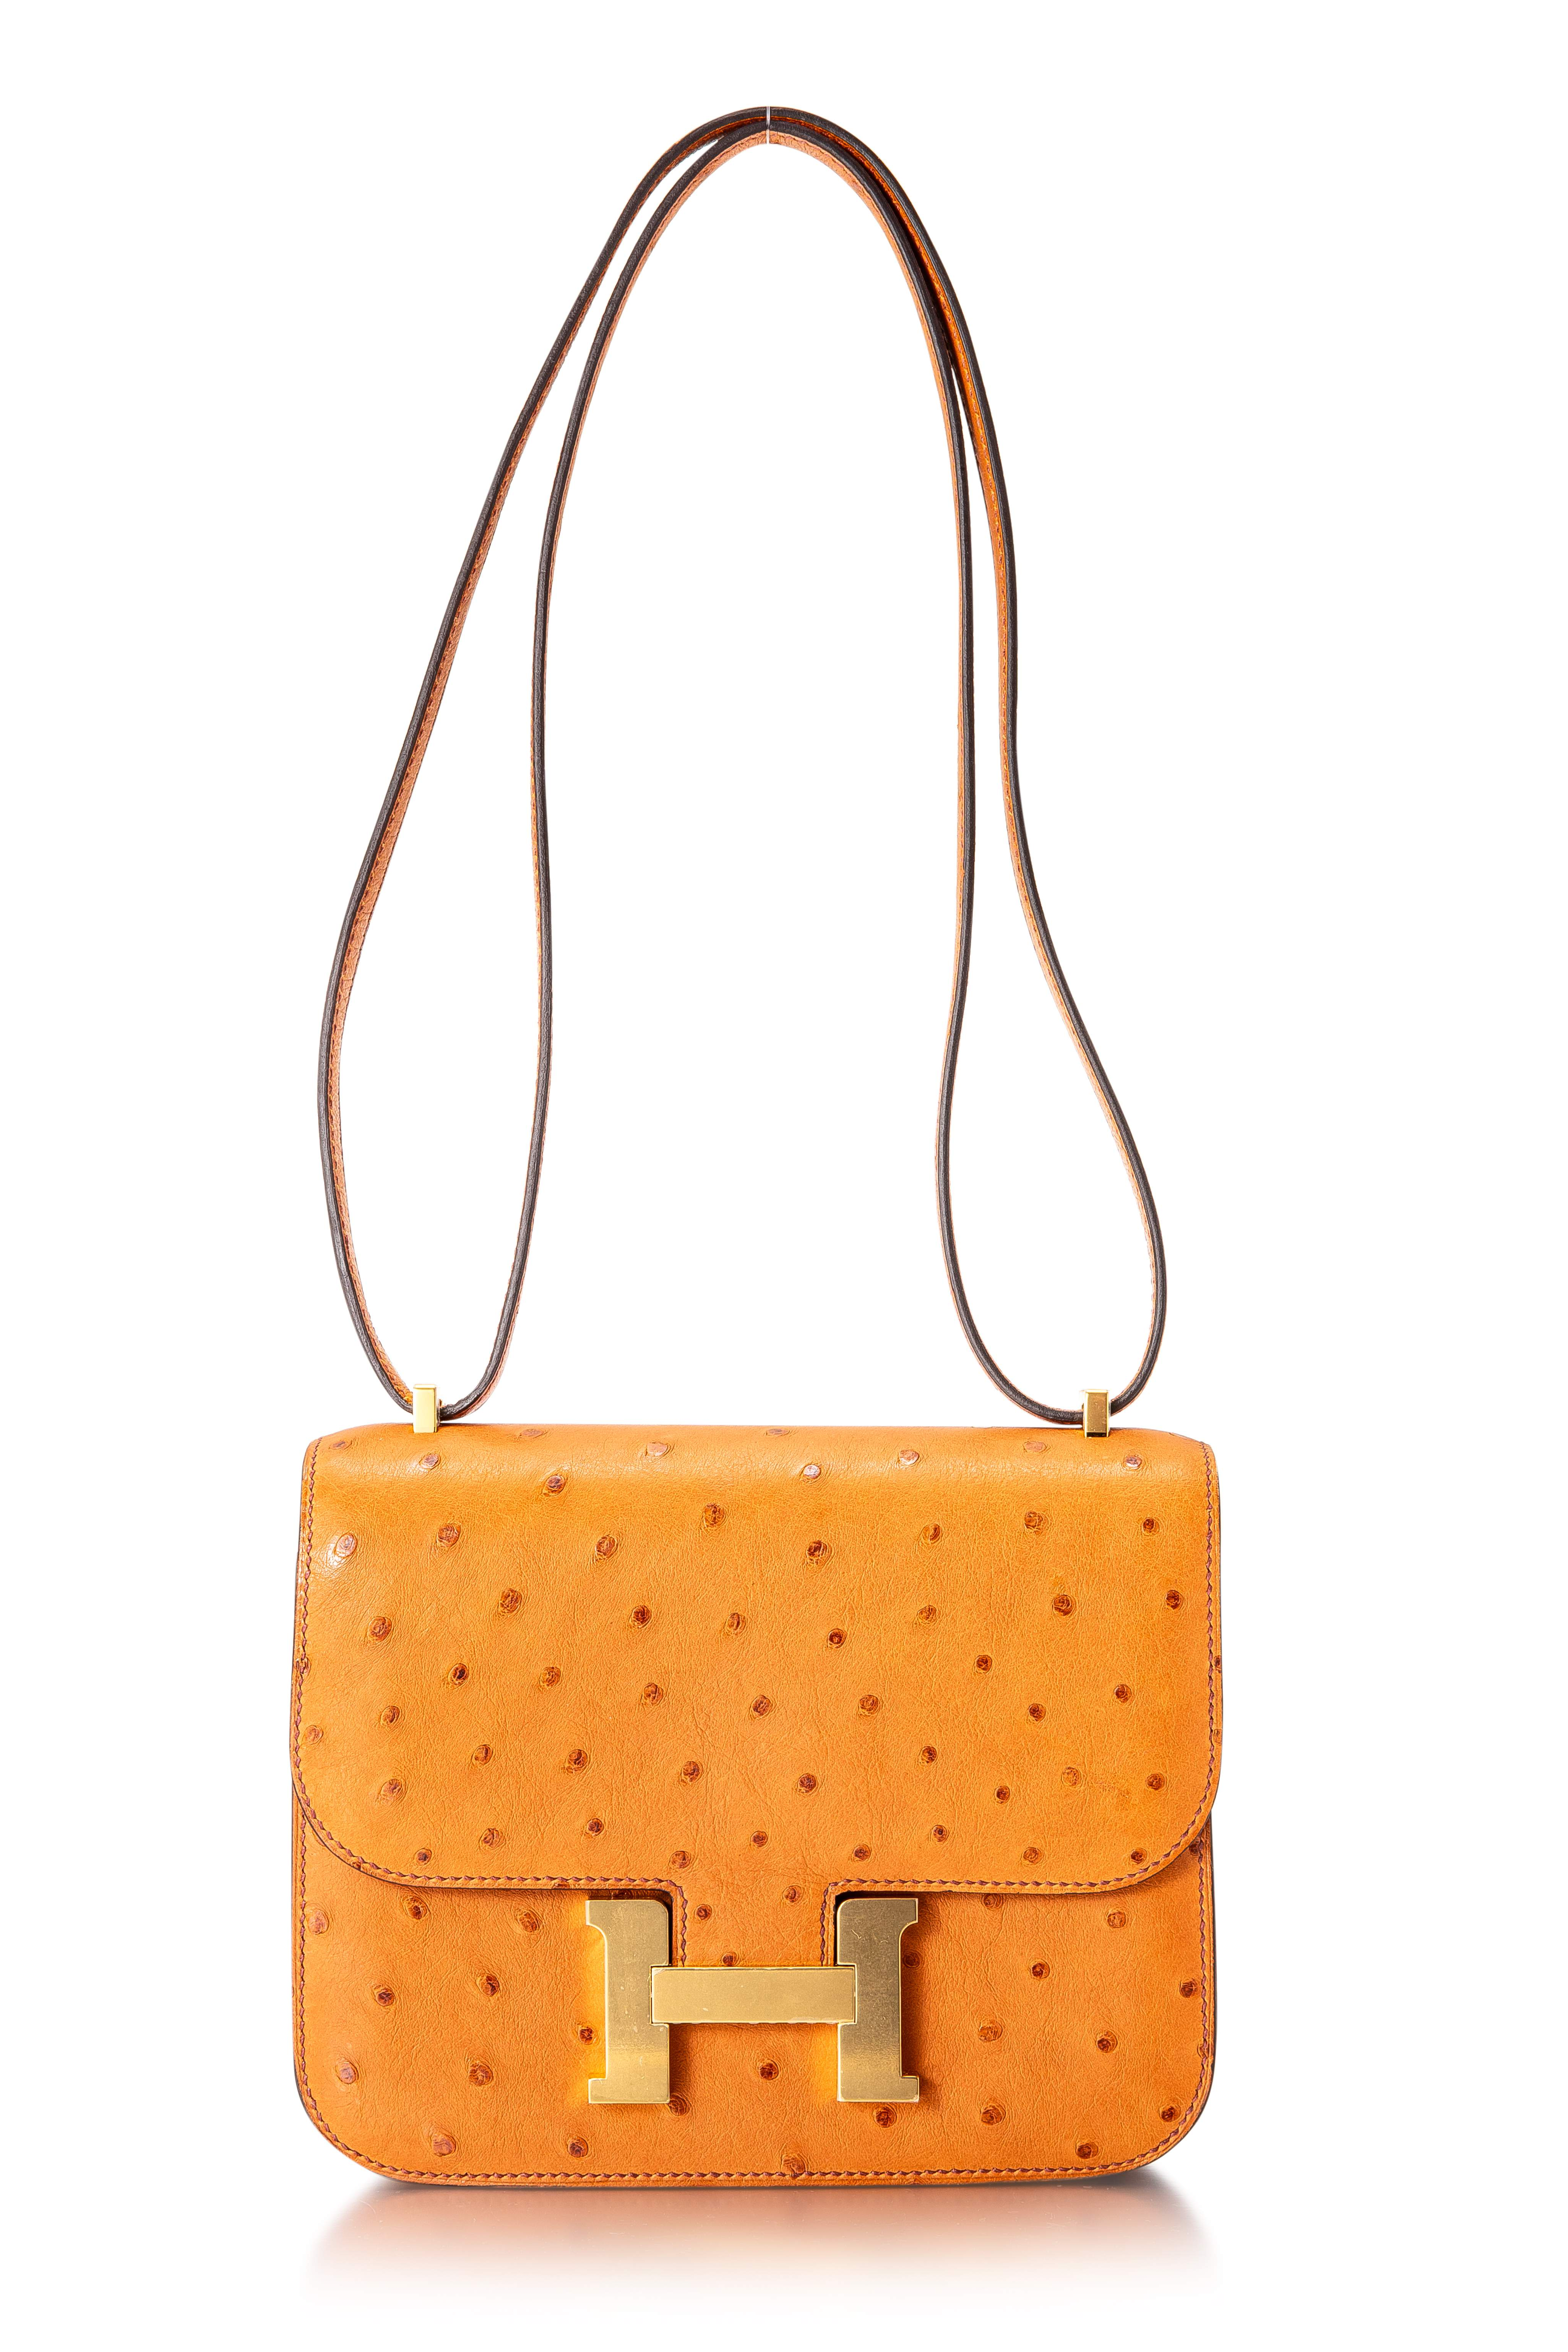 View full screen - View 1 of Lot 8512. Cognac Constance Mini in Ostrich Leather with Gold Hardware, 2020.